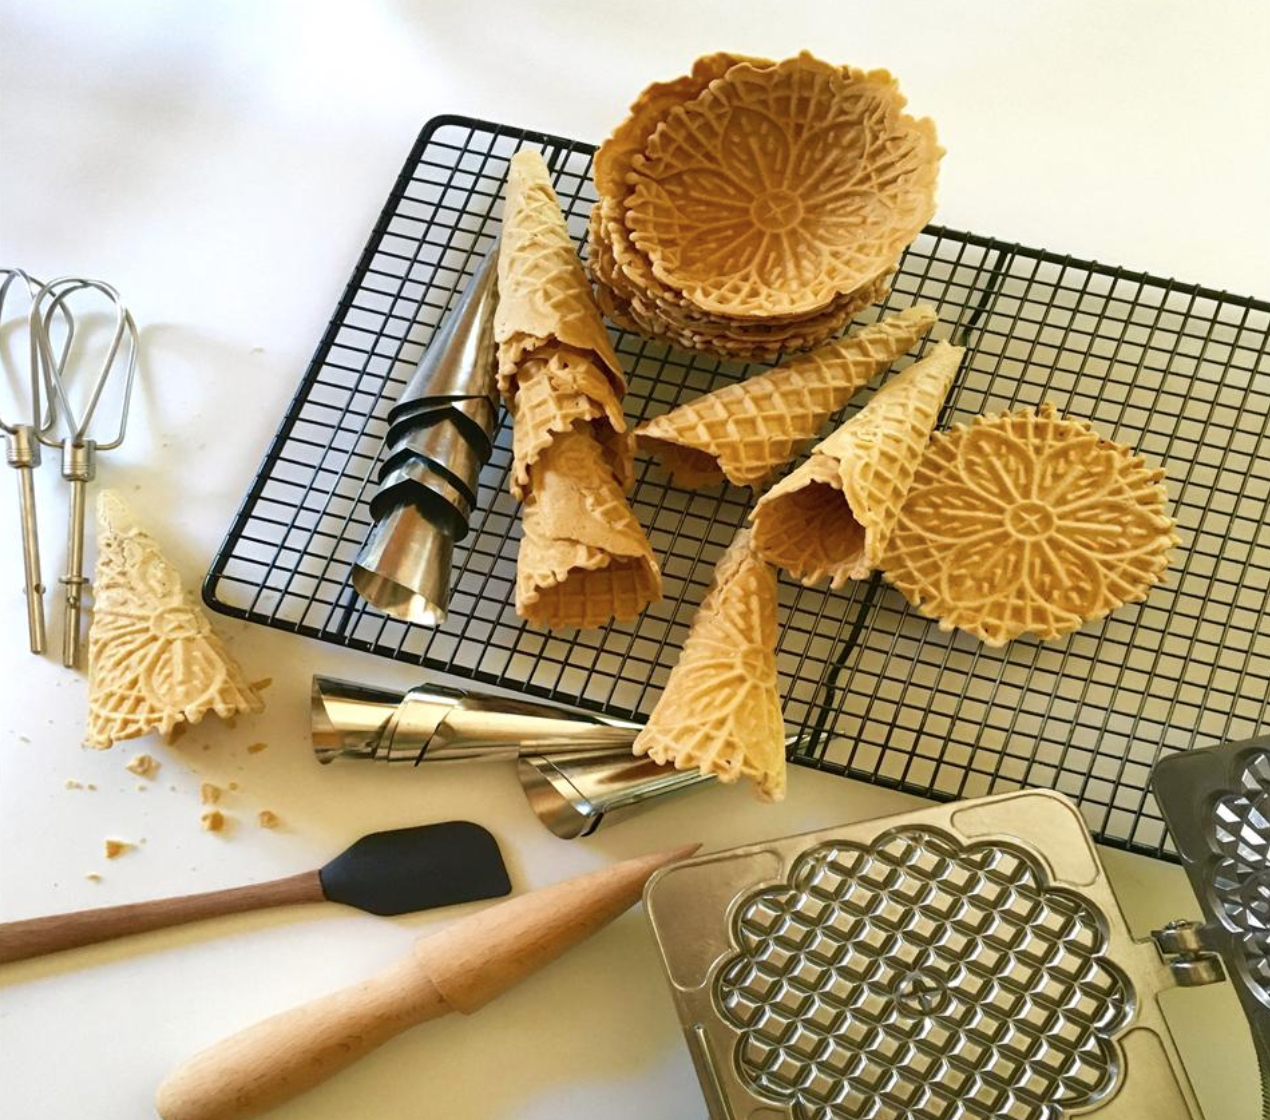 If you've always wanted to try your hand at pizzelle-making, but you follow a gluten-free diet, this paleo recipe was made for you.